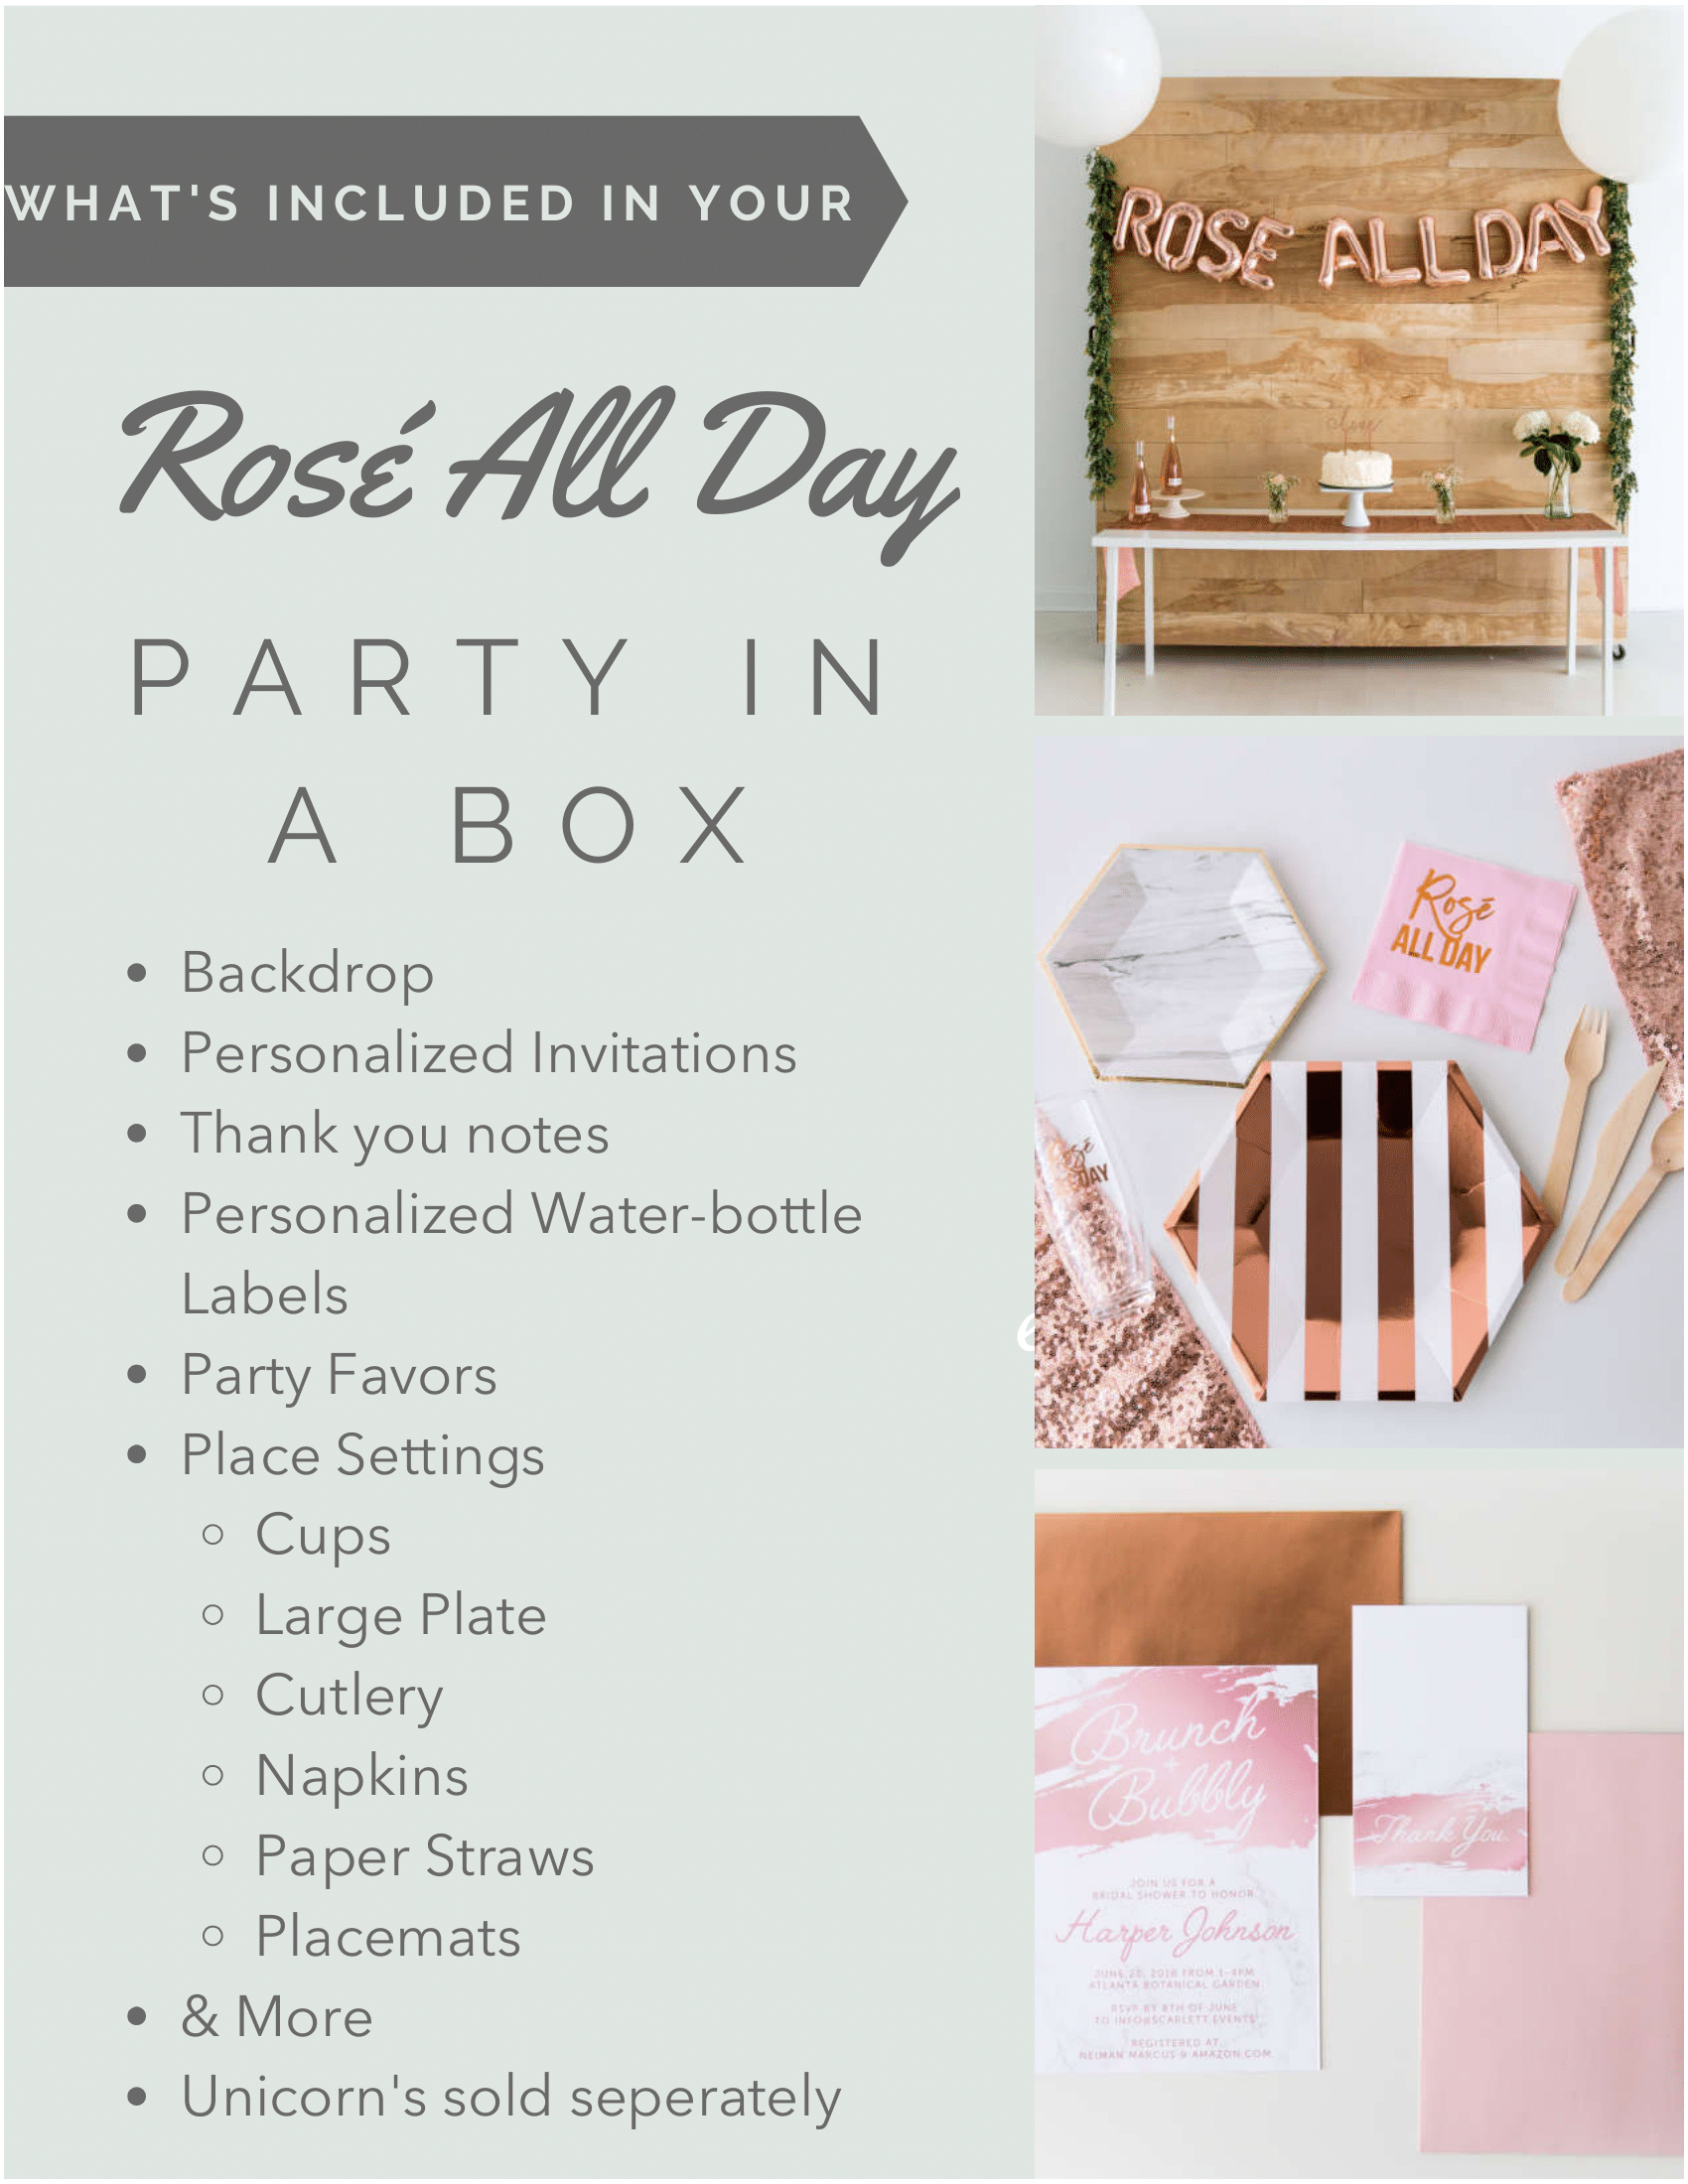 Whats Included - Rose All Day